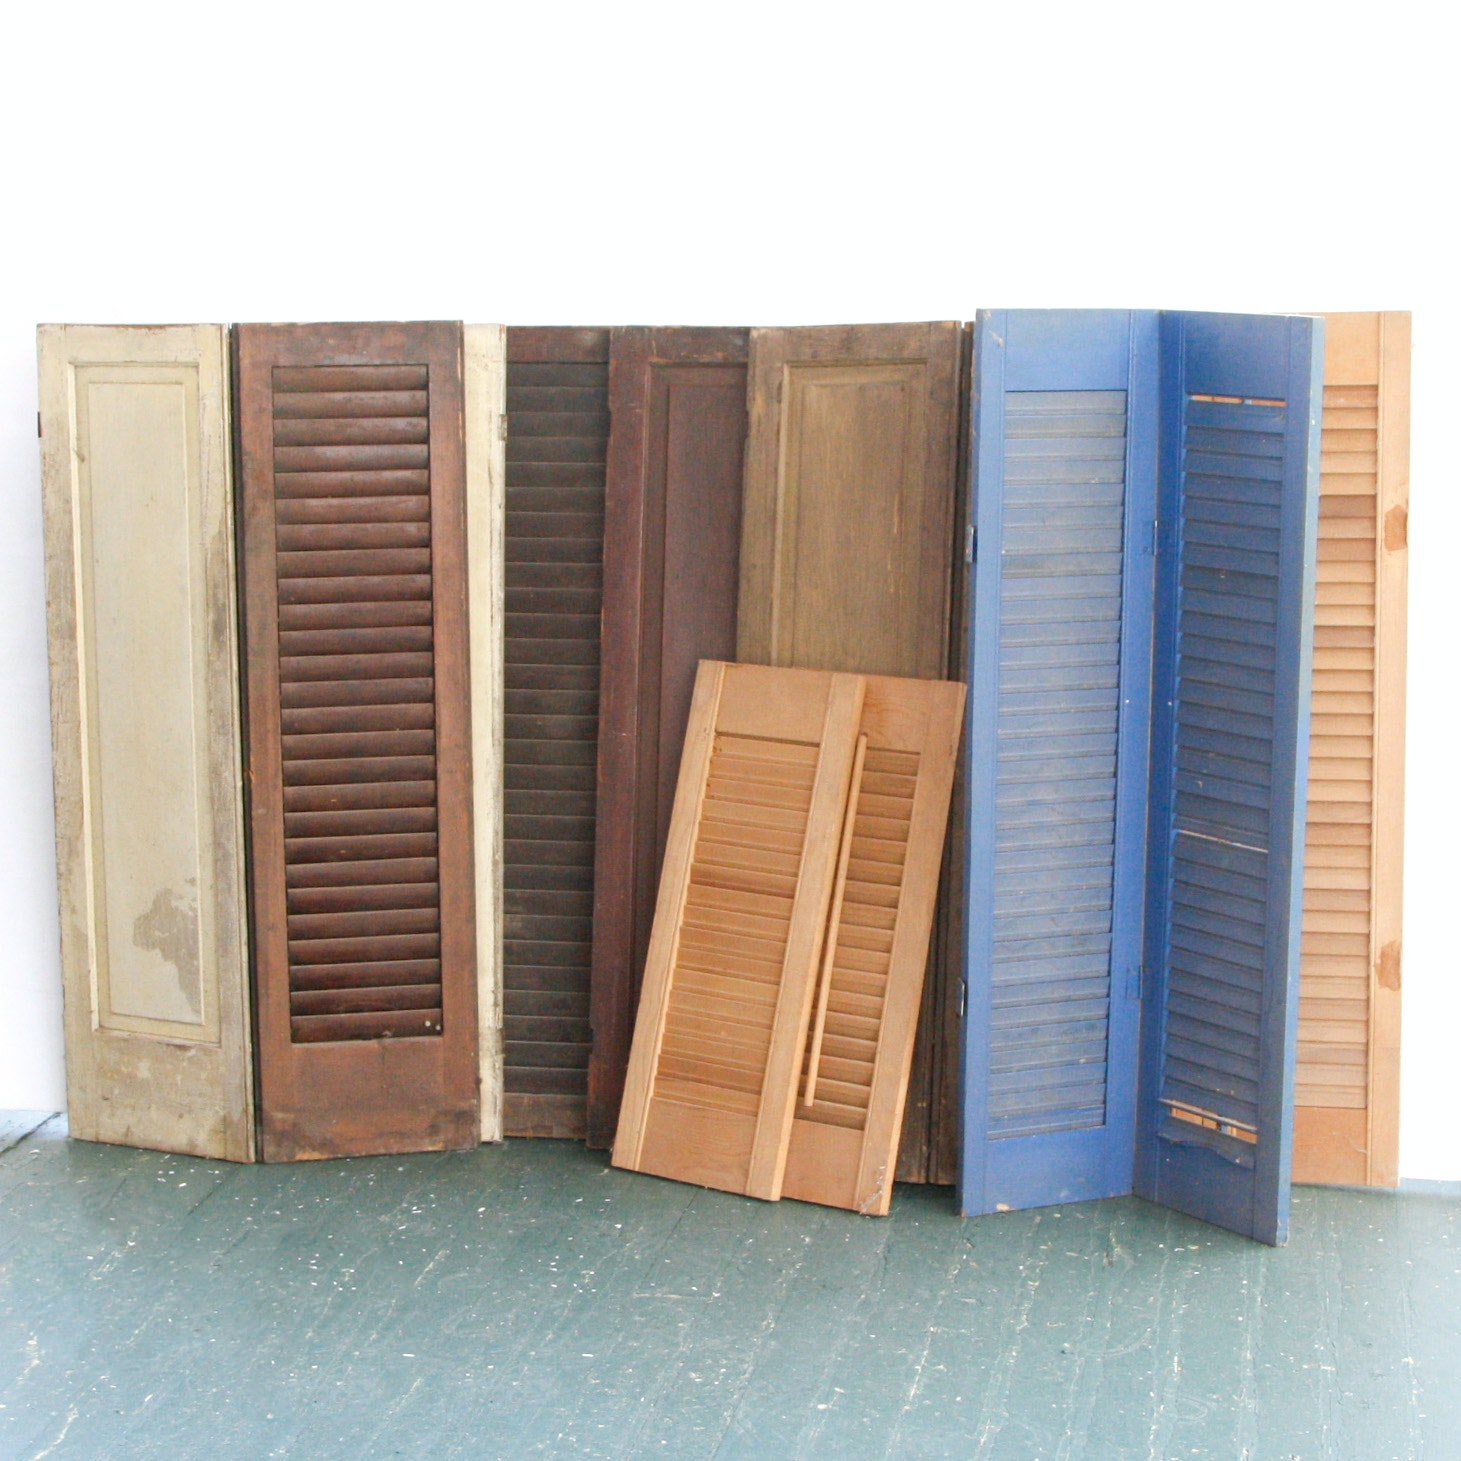 Group of Wooden Shutters